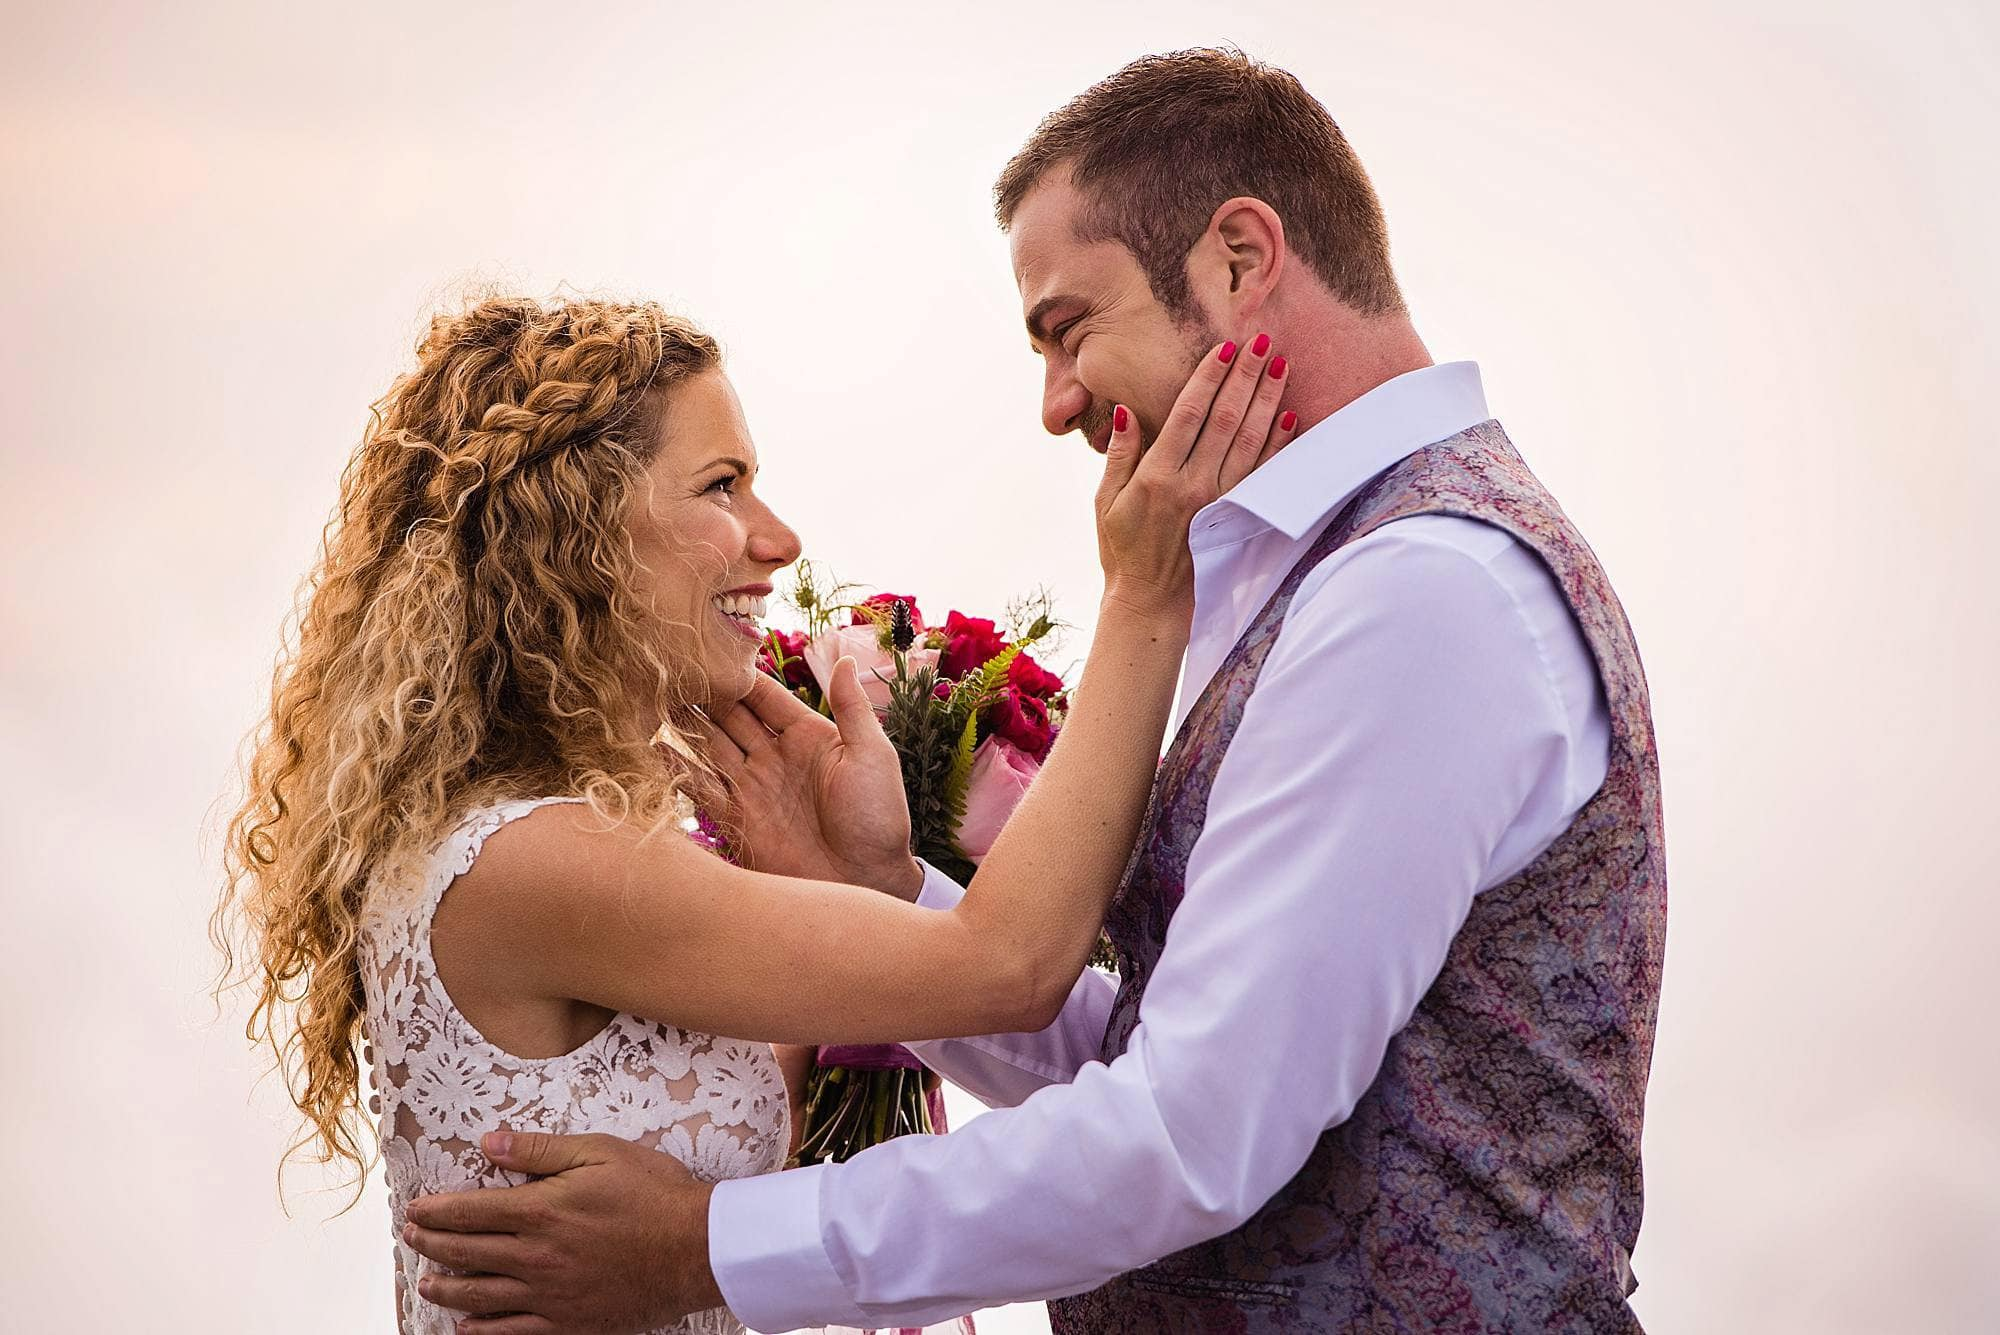 bride and groom touching each other's faces during ceremony